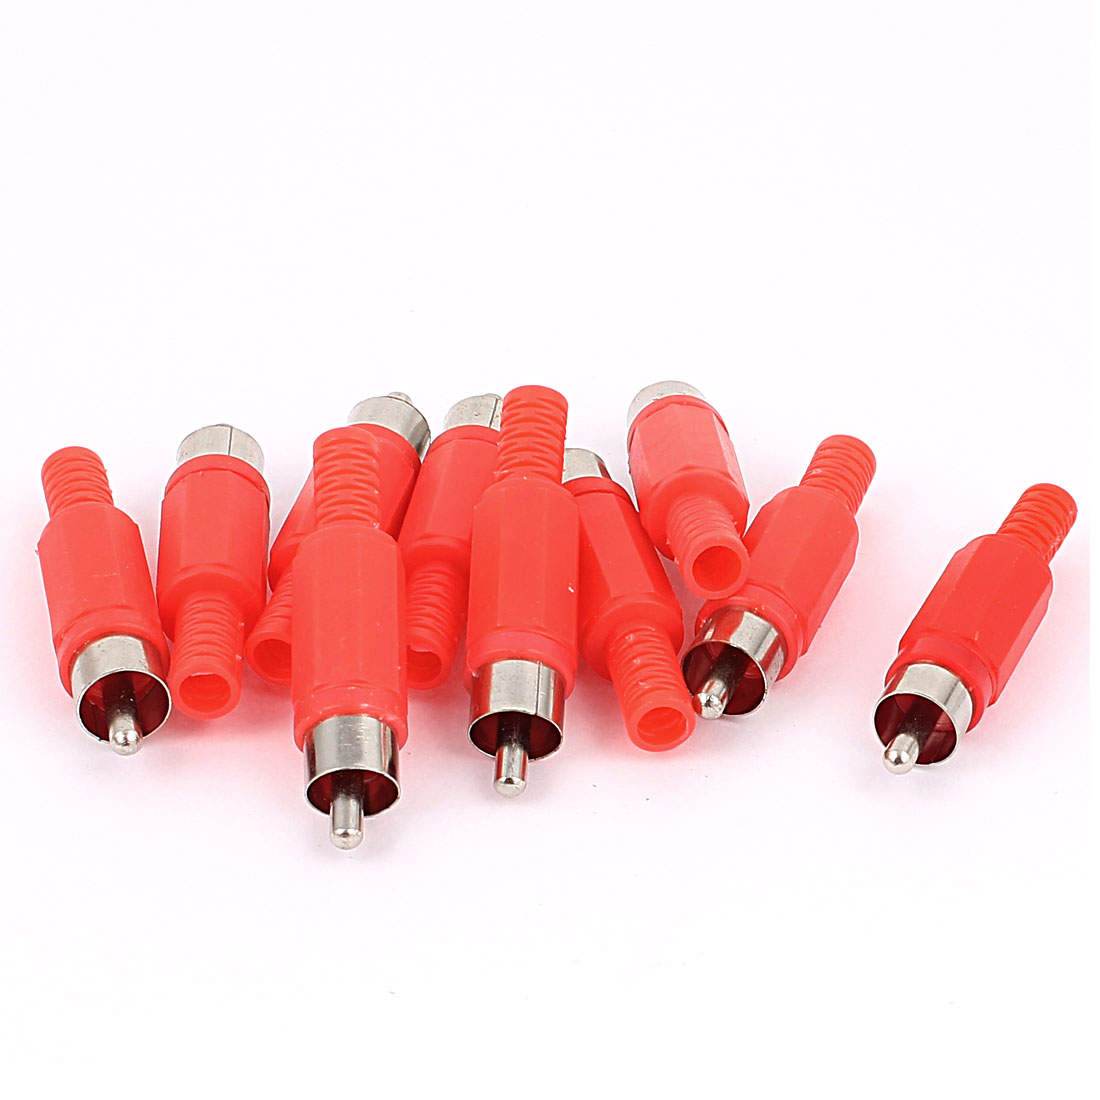 10 Pcs RCA Male Connector Audio Adapter Video Plated Solder Red